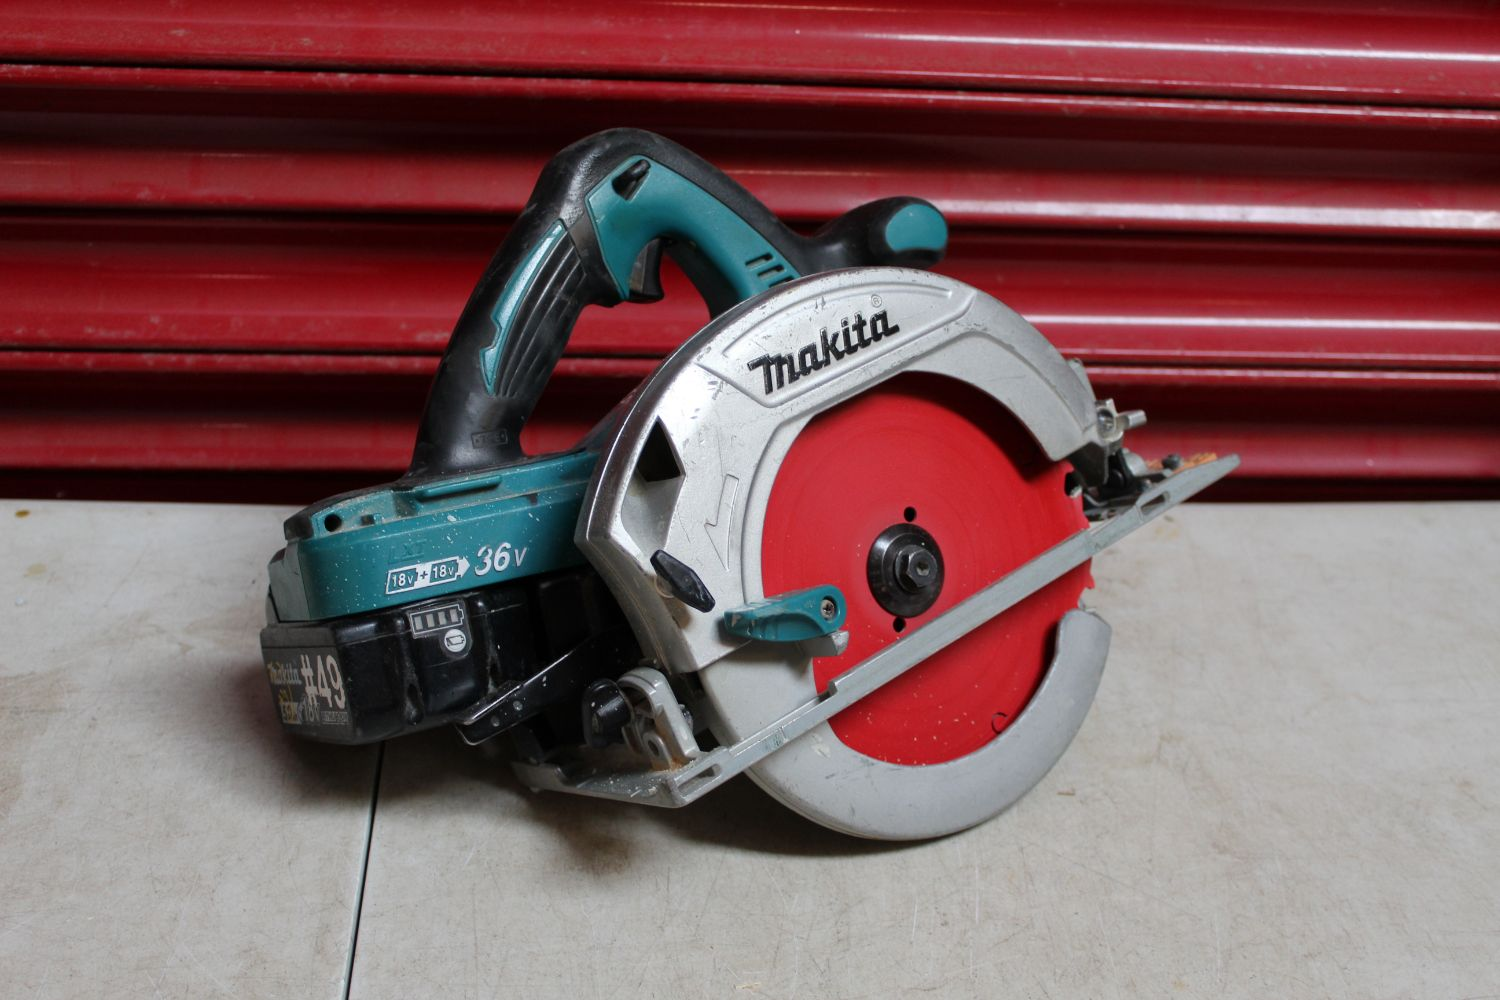 Timed Online Auction of Carpenters, Builders & Mechanics Tools, Gardening & Ground Working Tools, Power Tools, Workshop Equipment & Fasteners